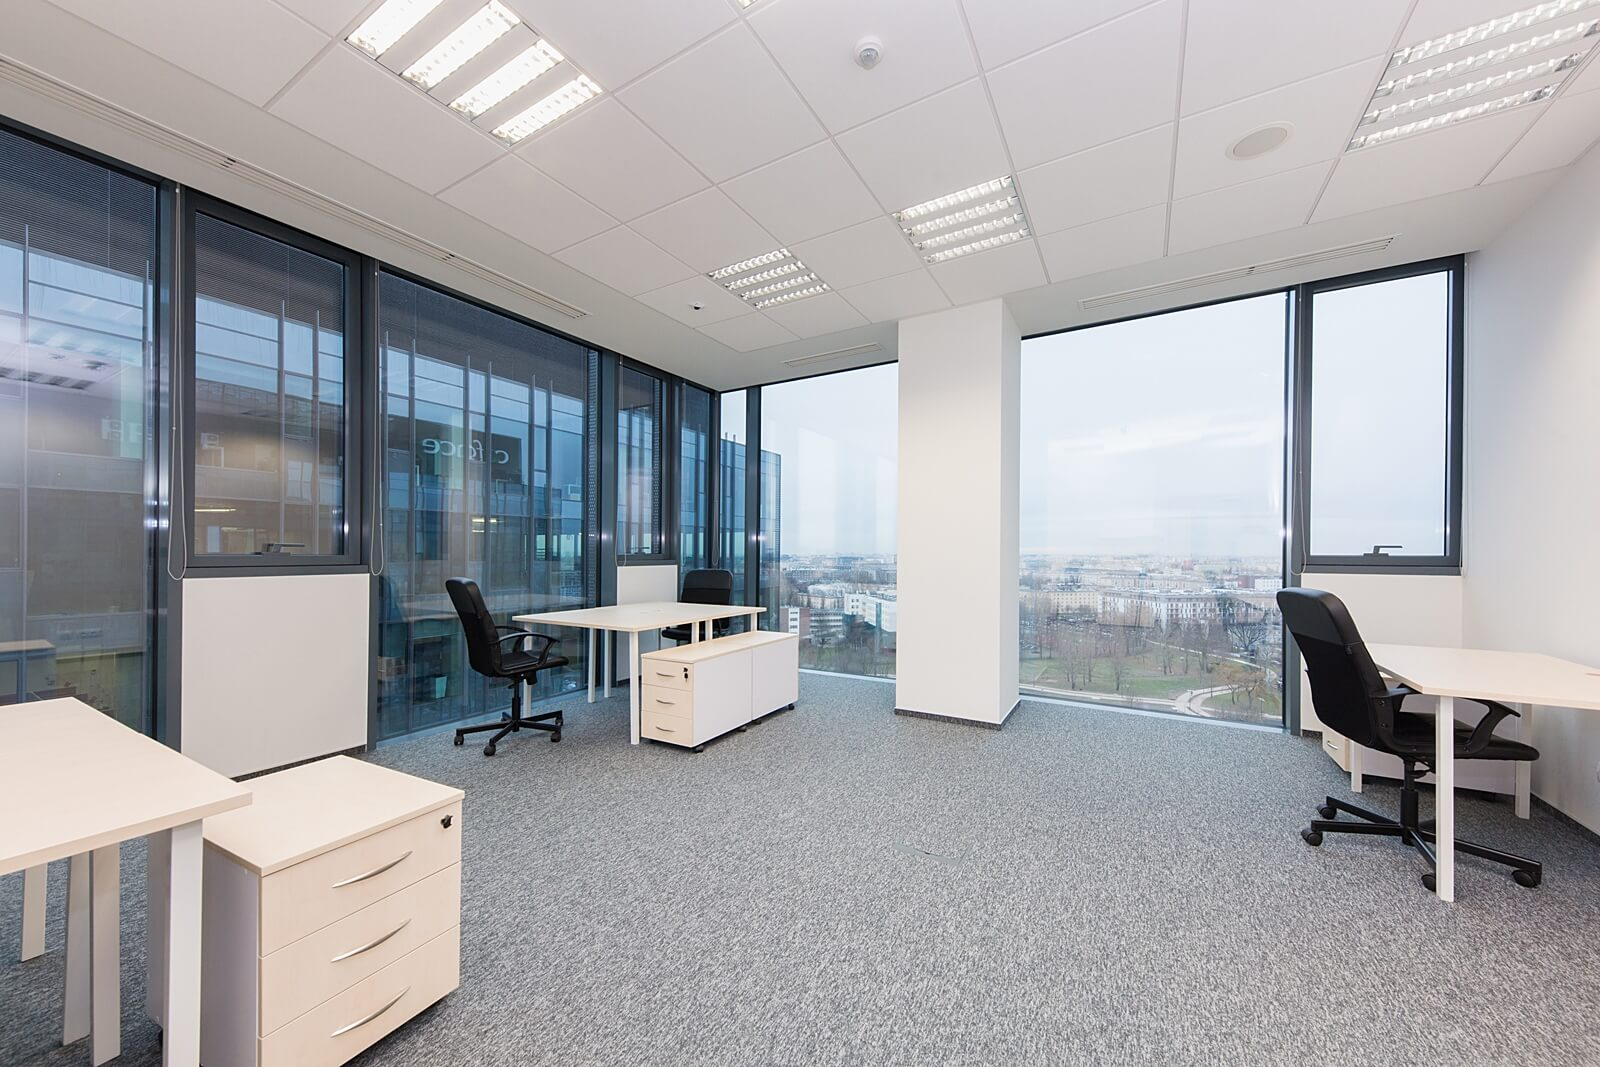 Office - OfficeHub West Station - Serviced Office - Warsaw